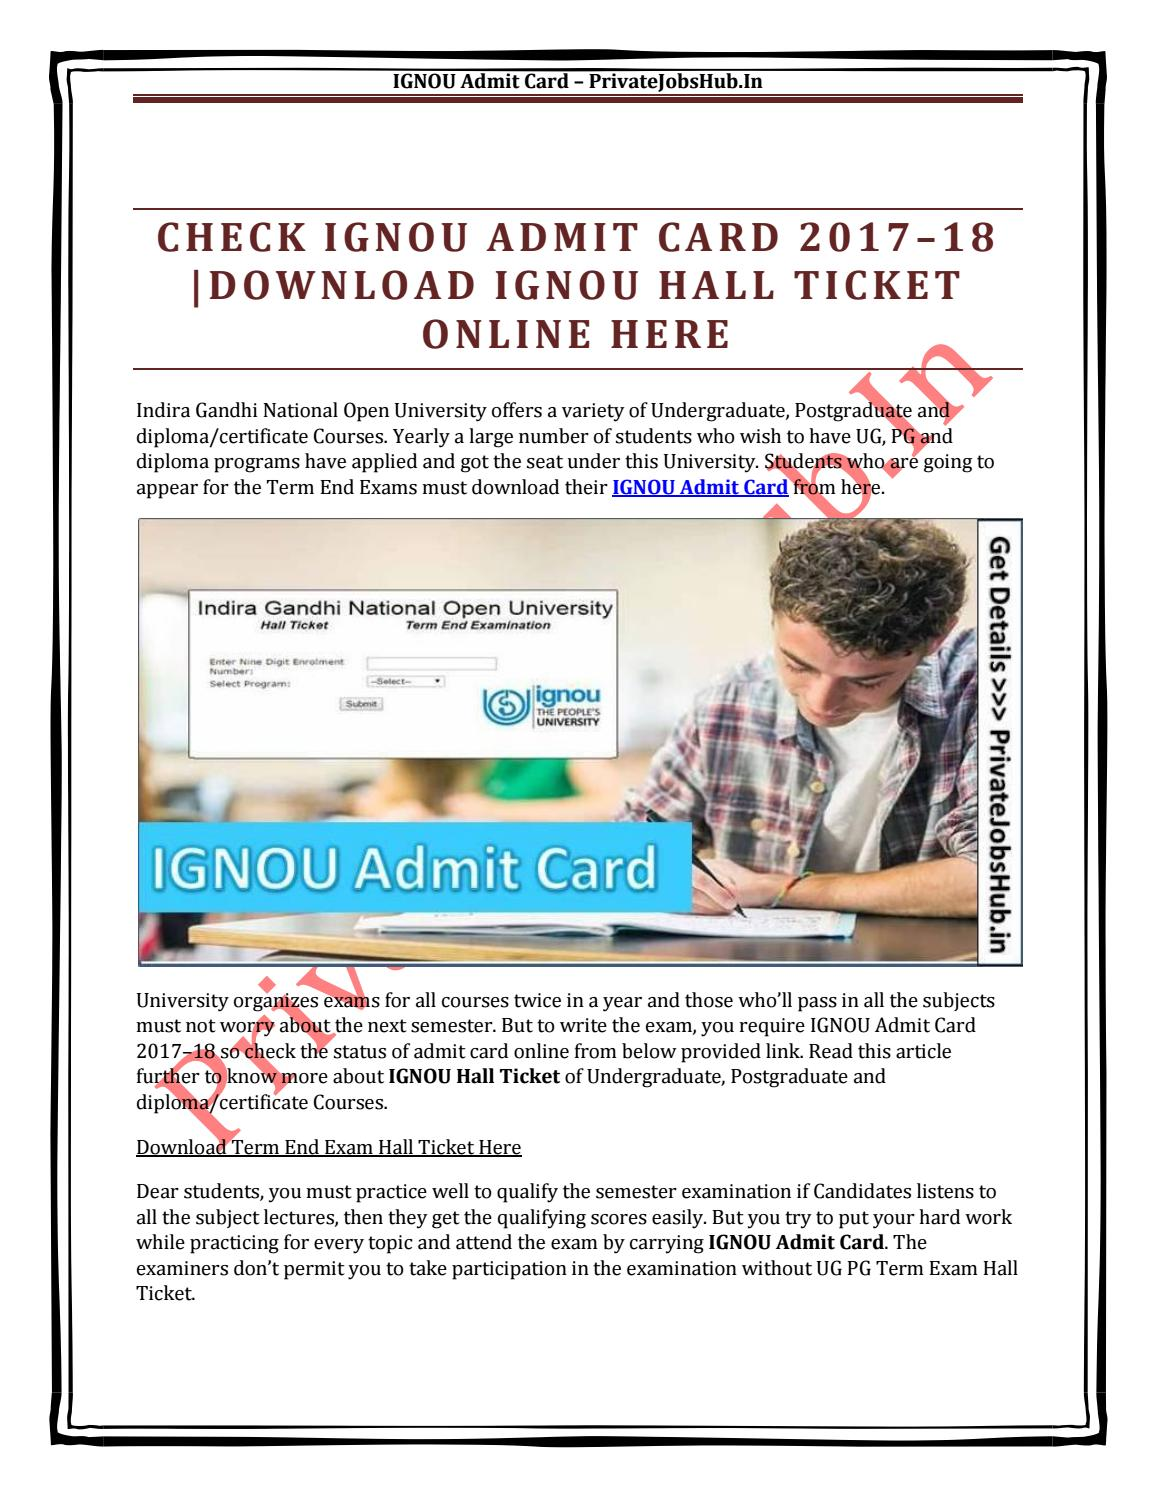 Check Ignou Admit Card 2017 18 Download Ignou Hall Ticket Online Here By Privatejobshub Issuu